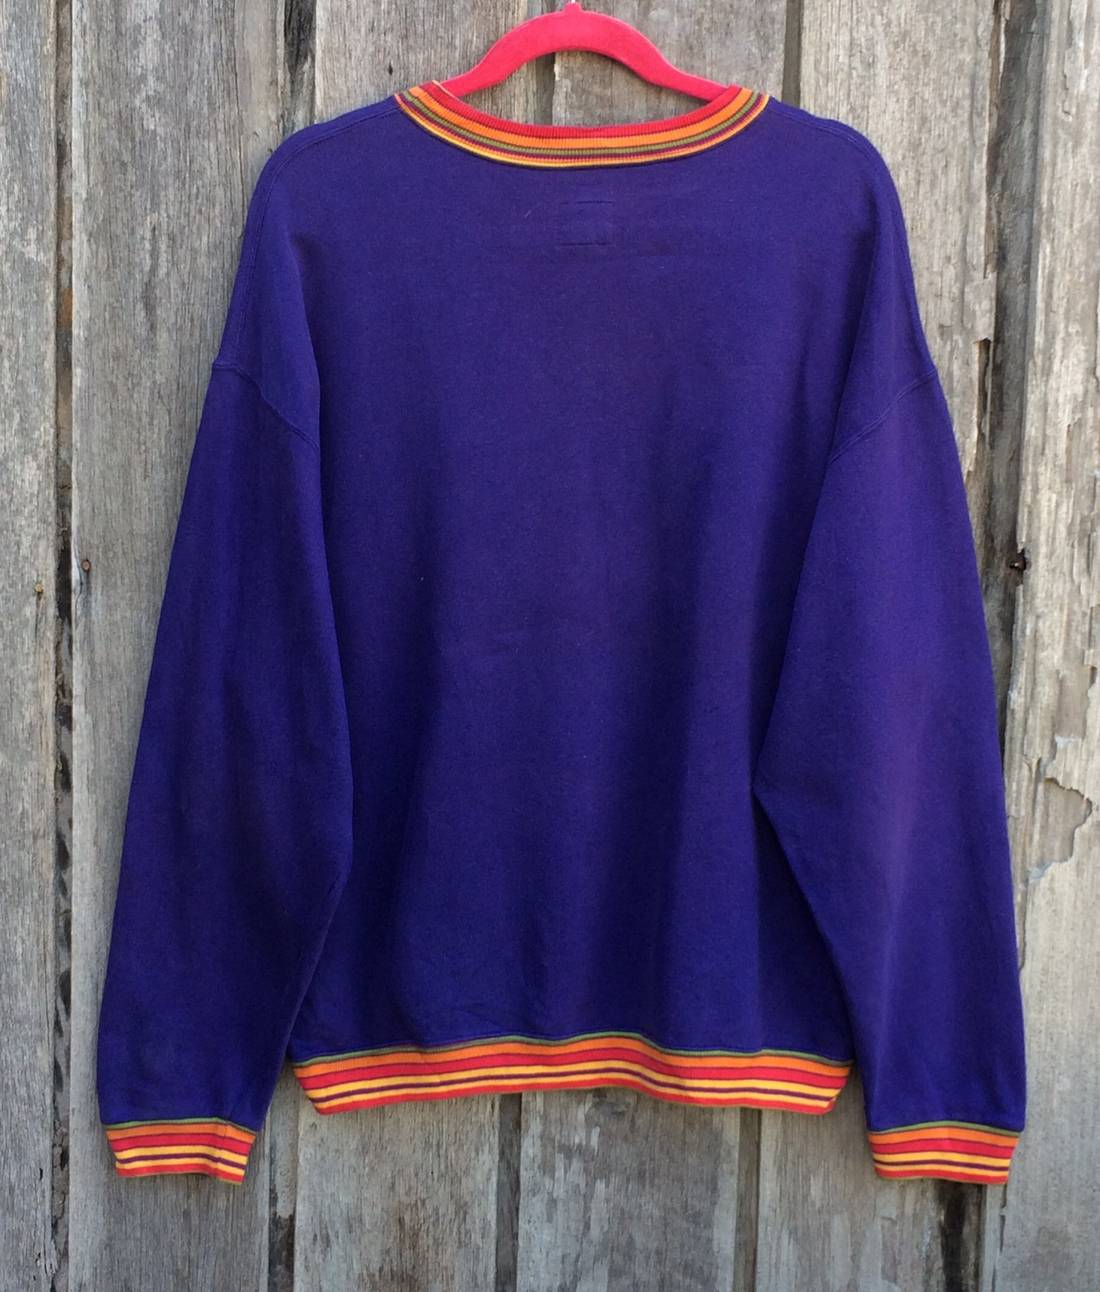 Sale!! Sale!! Vintage United Colour Of Benetton Sweatshirt Spell Out Rare UaW431n